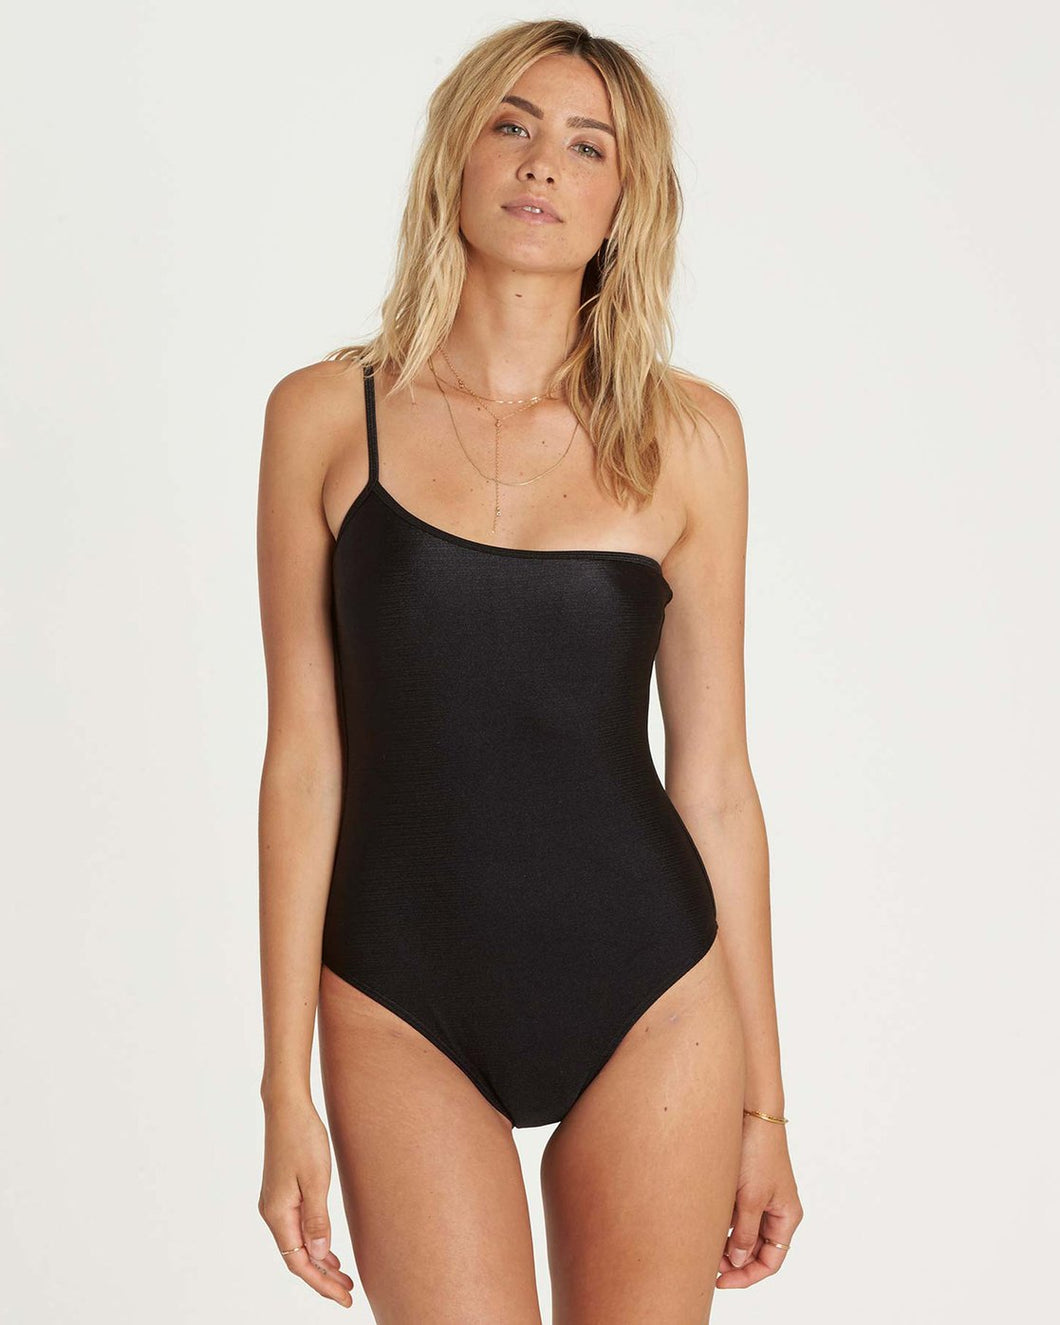 Billabong Swimwear 'Love Bound' One Piece in Black